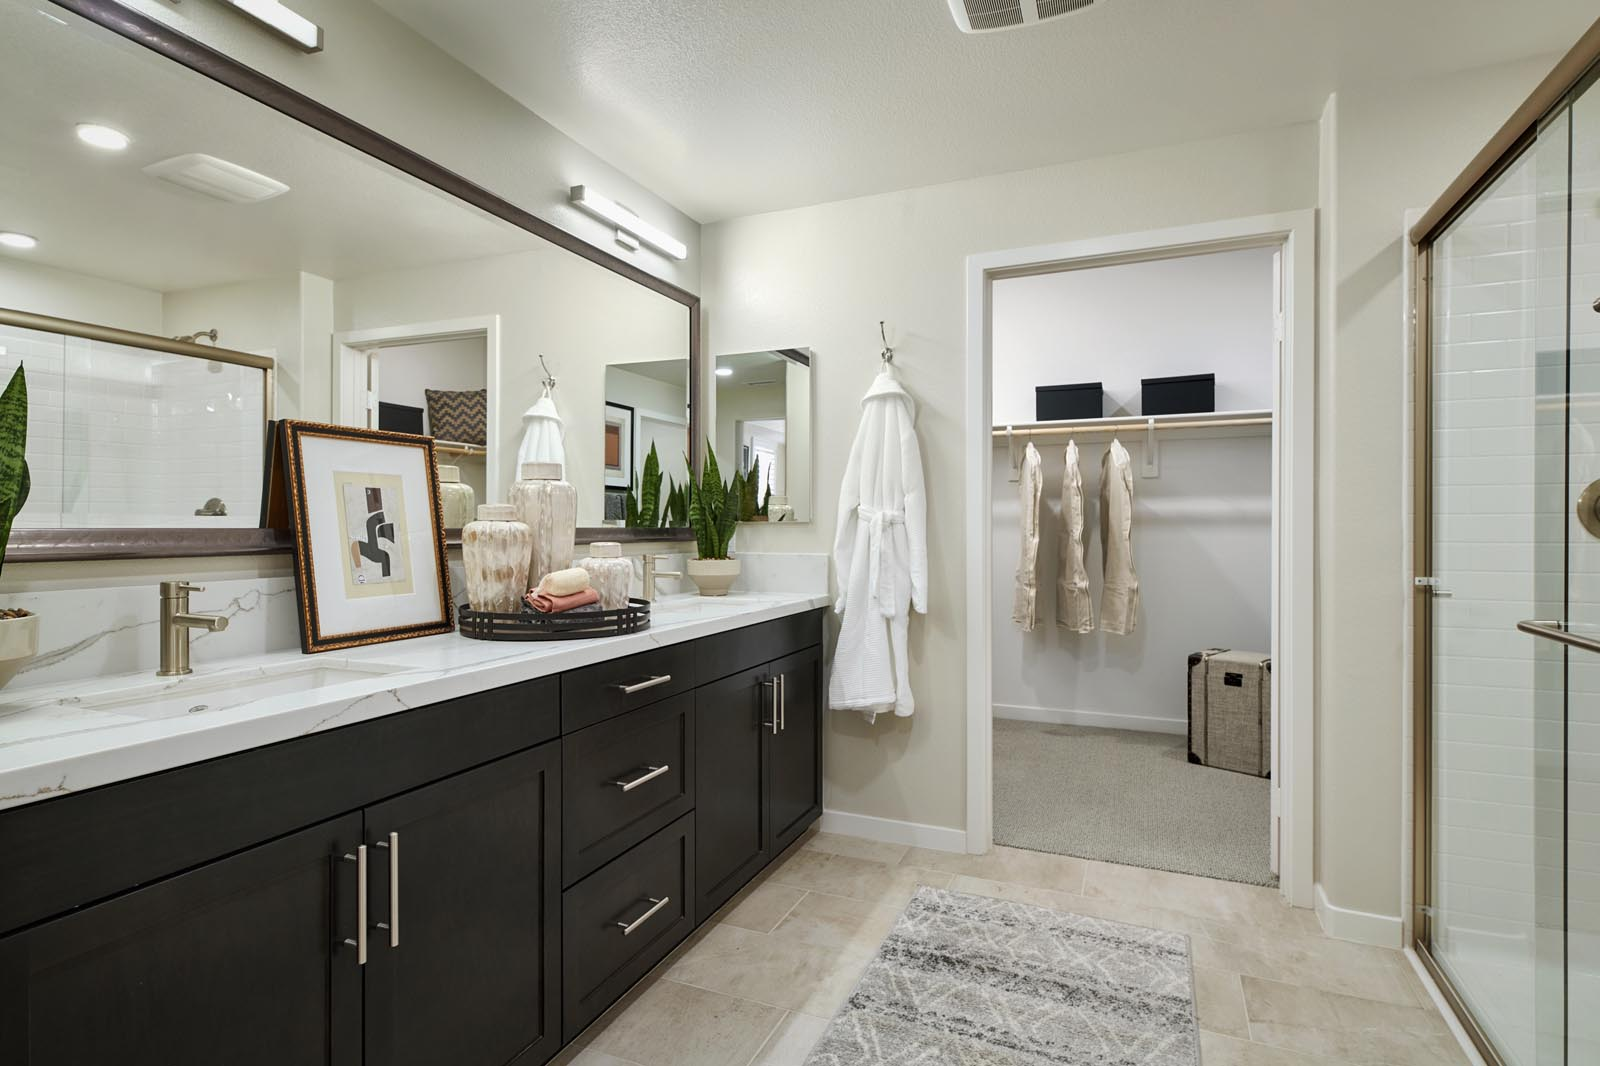 Bathroom | Residence 5 | Aspire | New Homes in Rancho Cucamonga, CA | Van Daele Homes